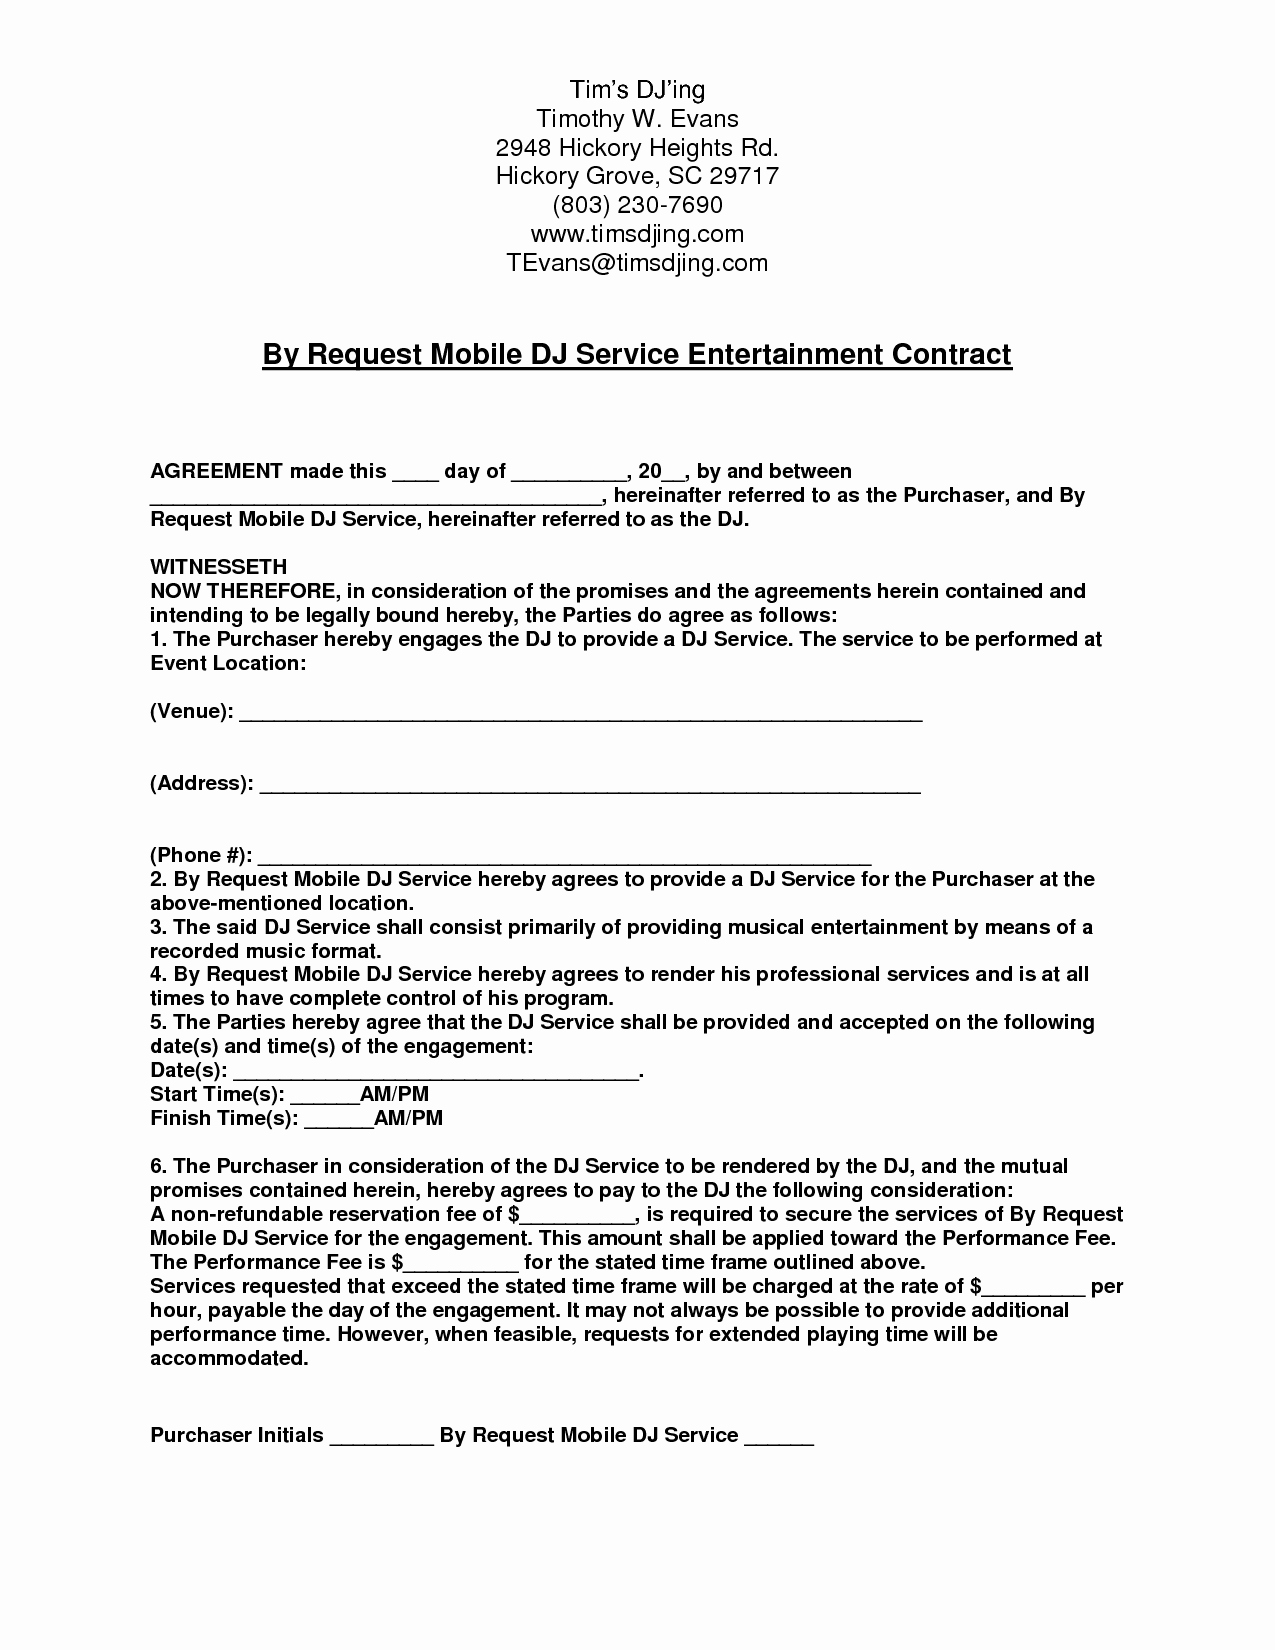 Disc Jockey Contracts Template Luxury Mobile Dj Contract